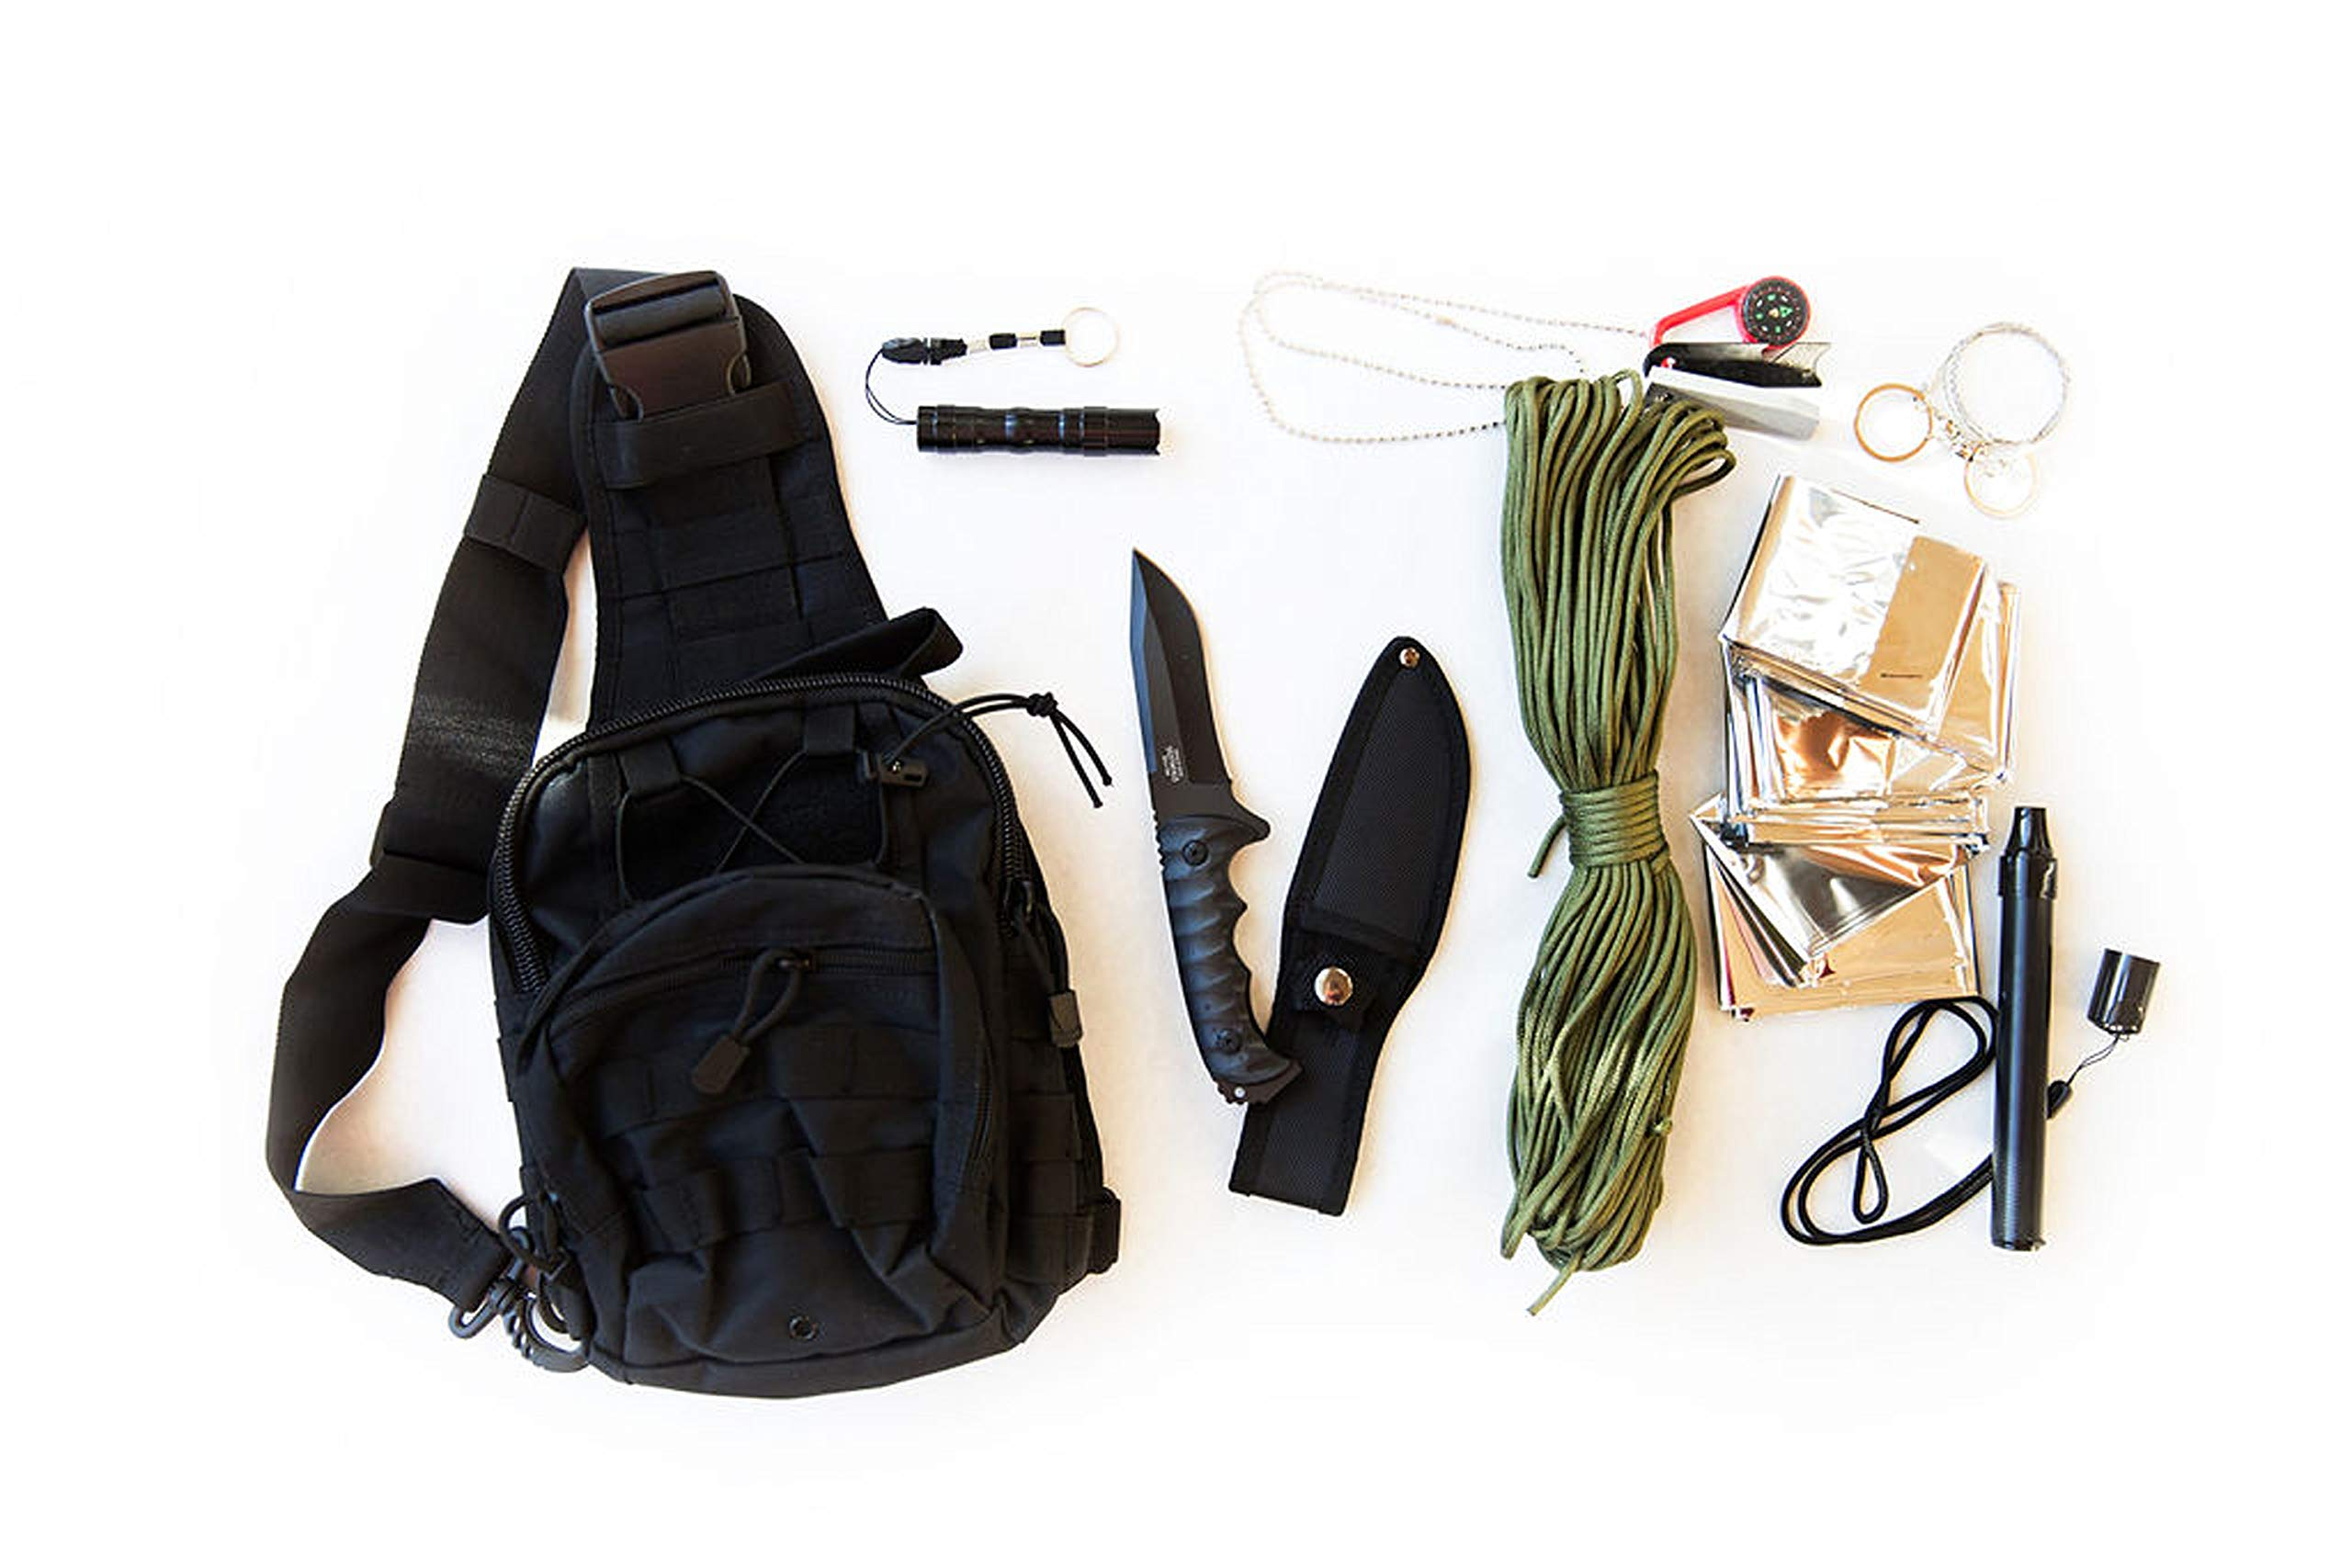 Coobera Survival Backpack Kit with Emergency Tactical Gear (Black)